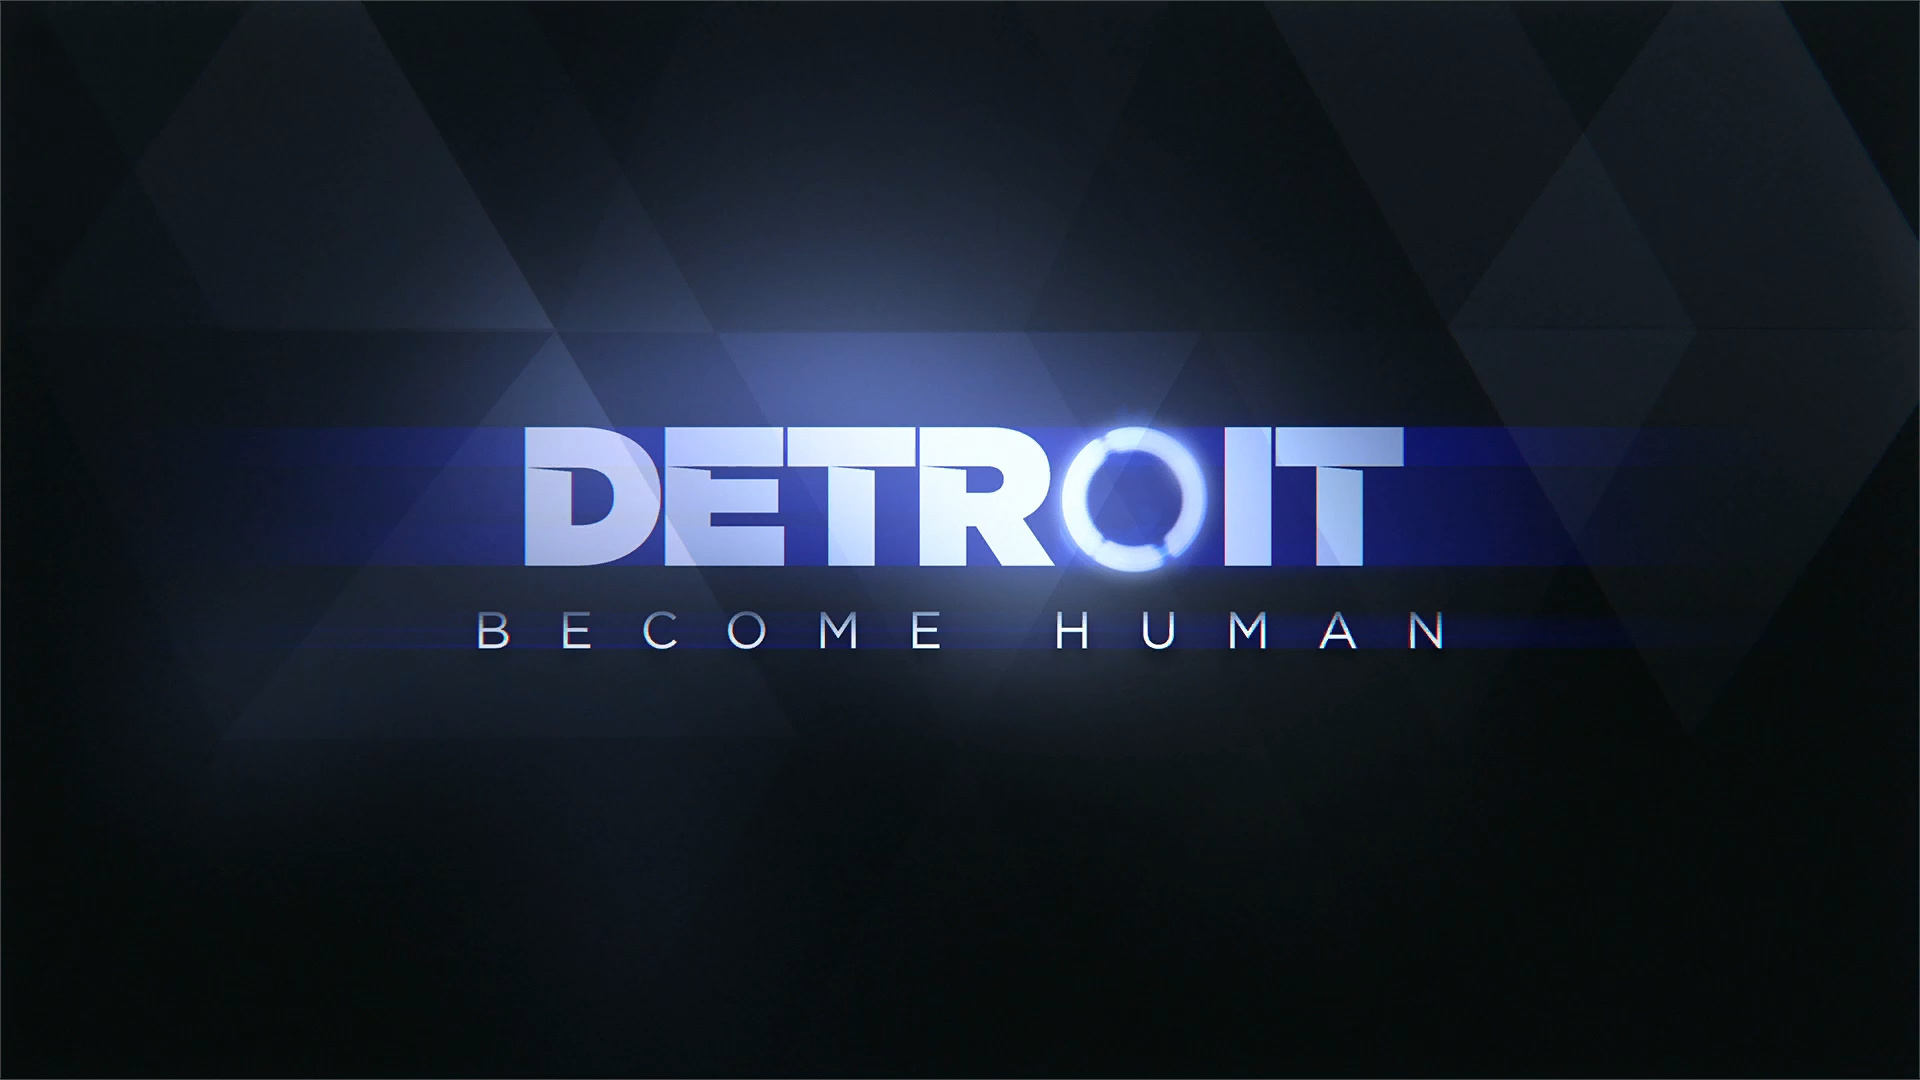 Detroit: Become Human の第一印象